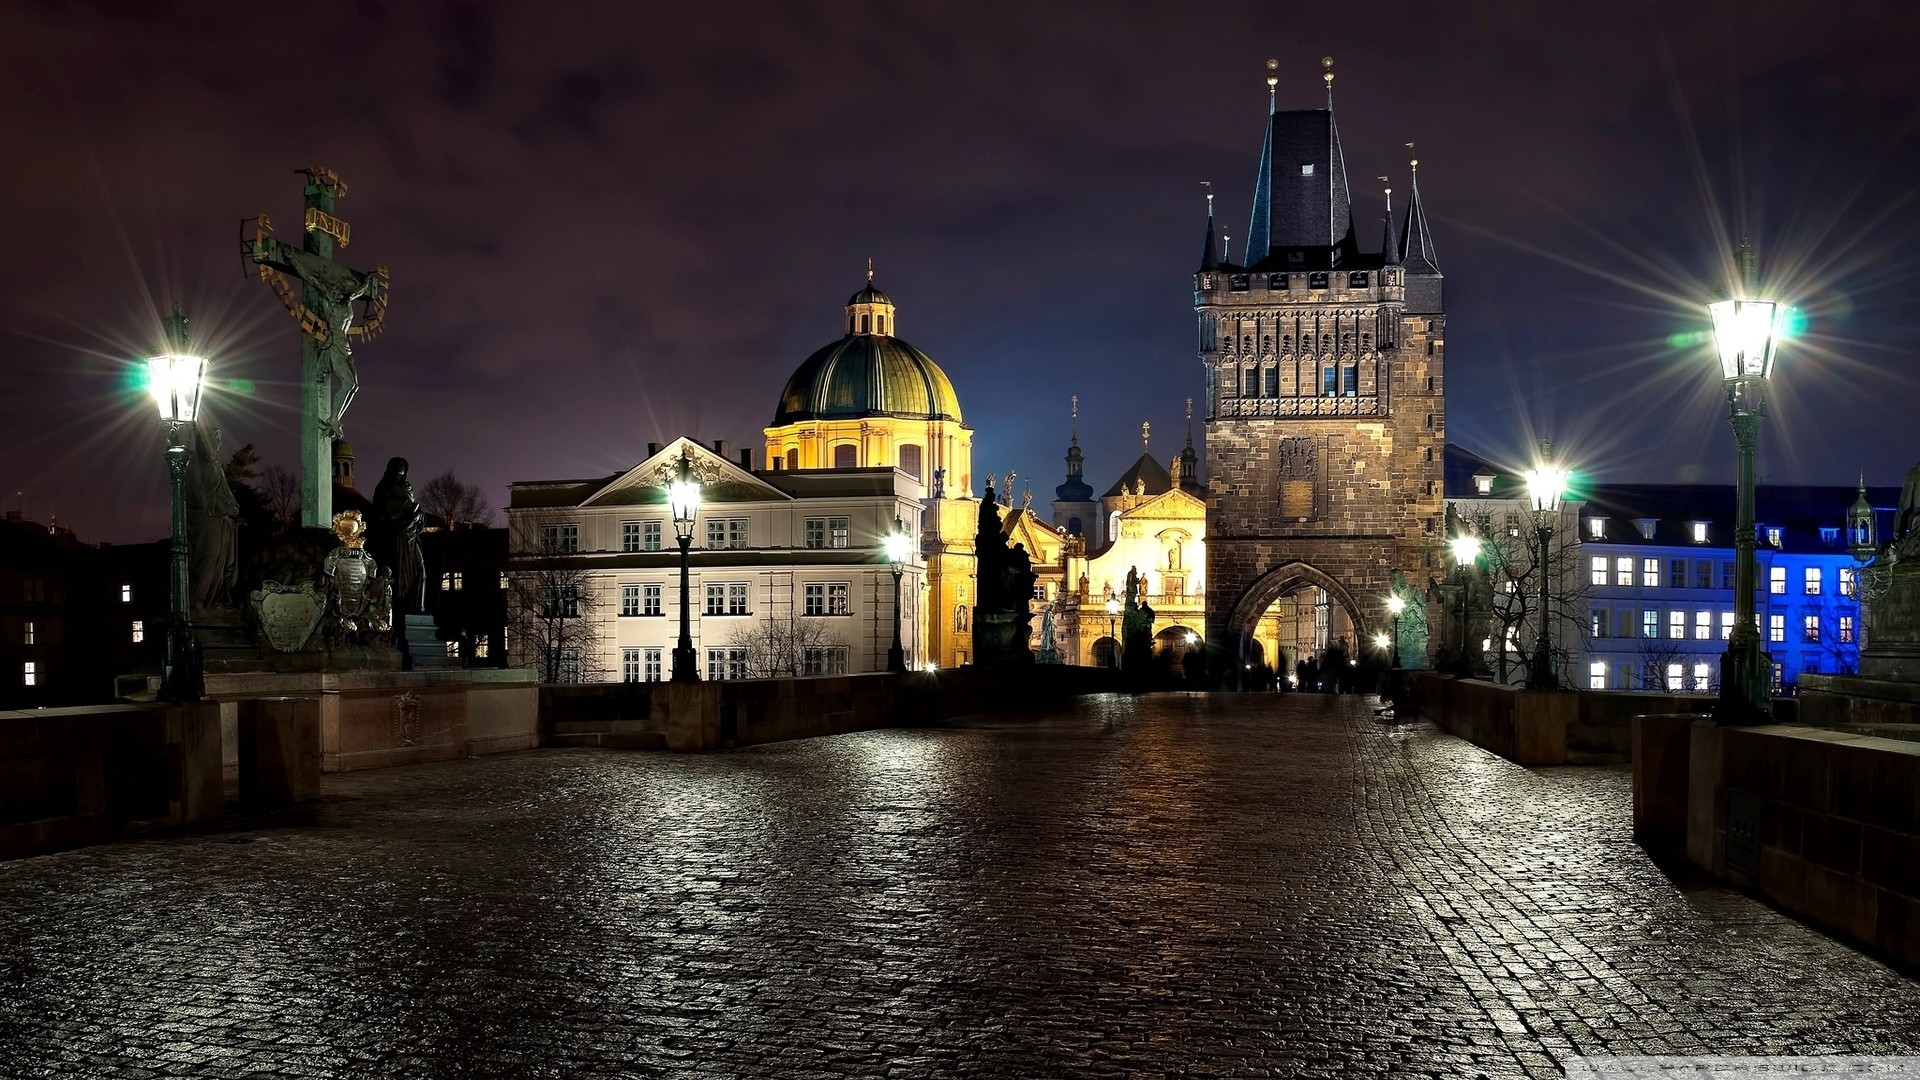 1920x1080 ... charles bridge hd desktop wallpaper widescreen high definition ...